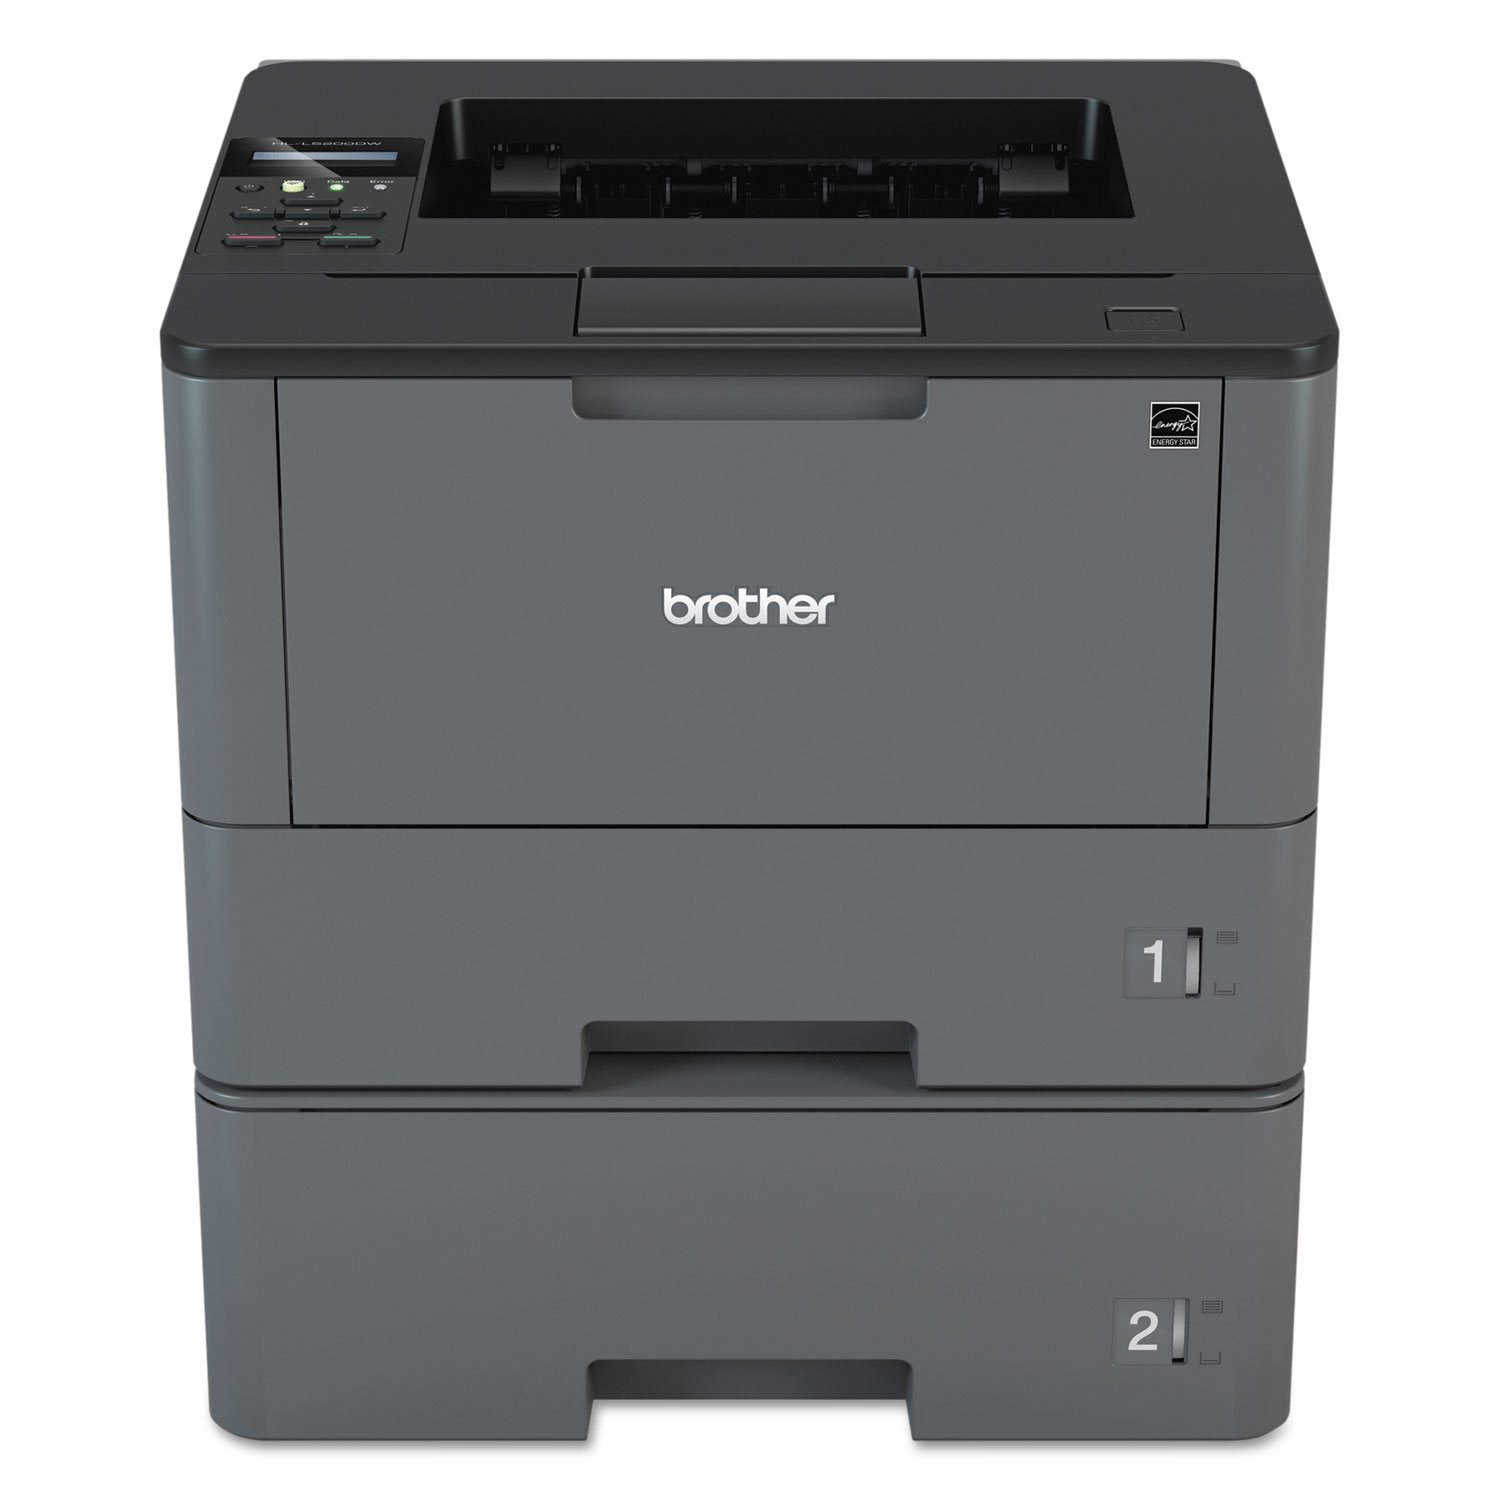 HL-L5200DWT Business Laser Printer With Wireless Networking, Duplex Printing